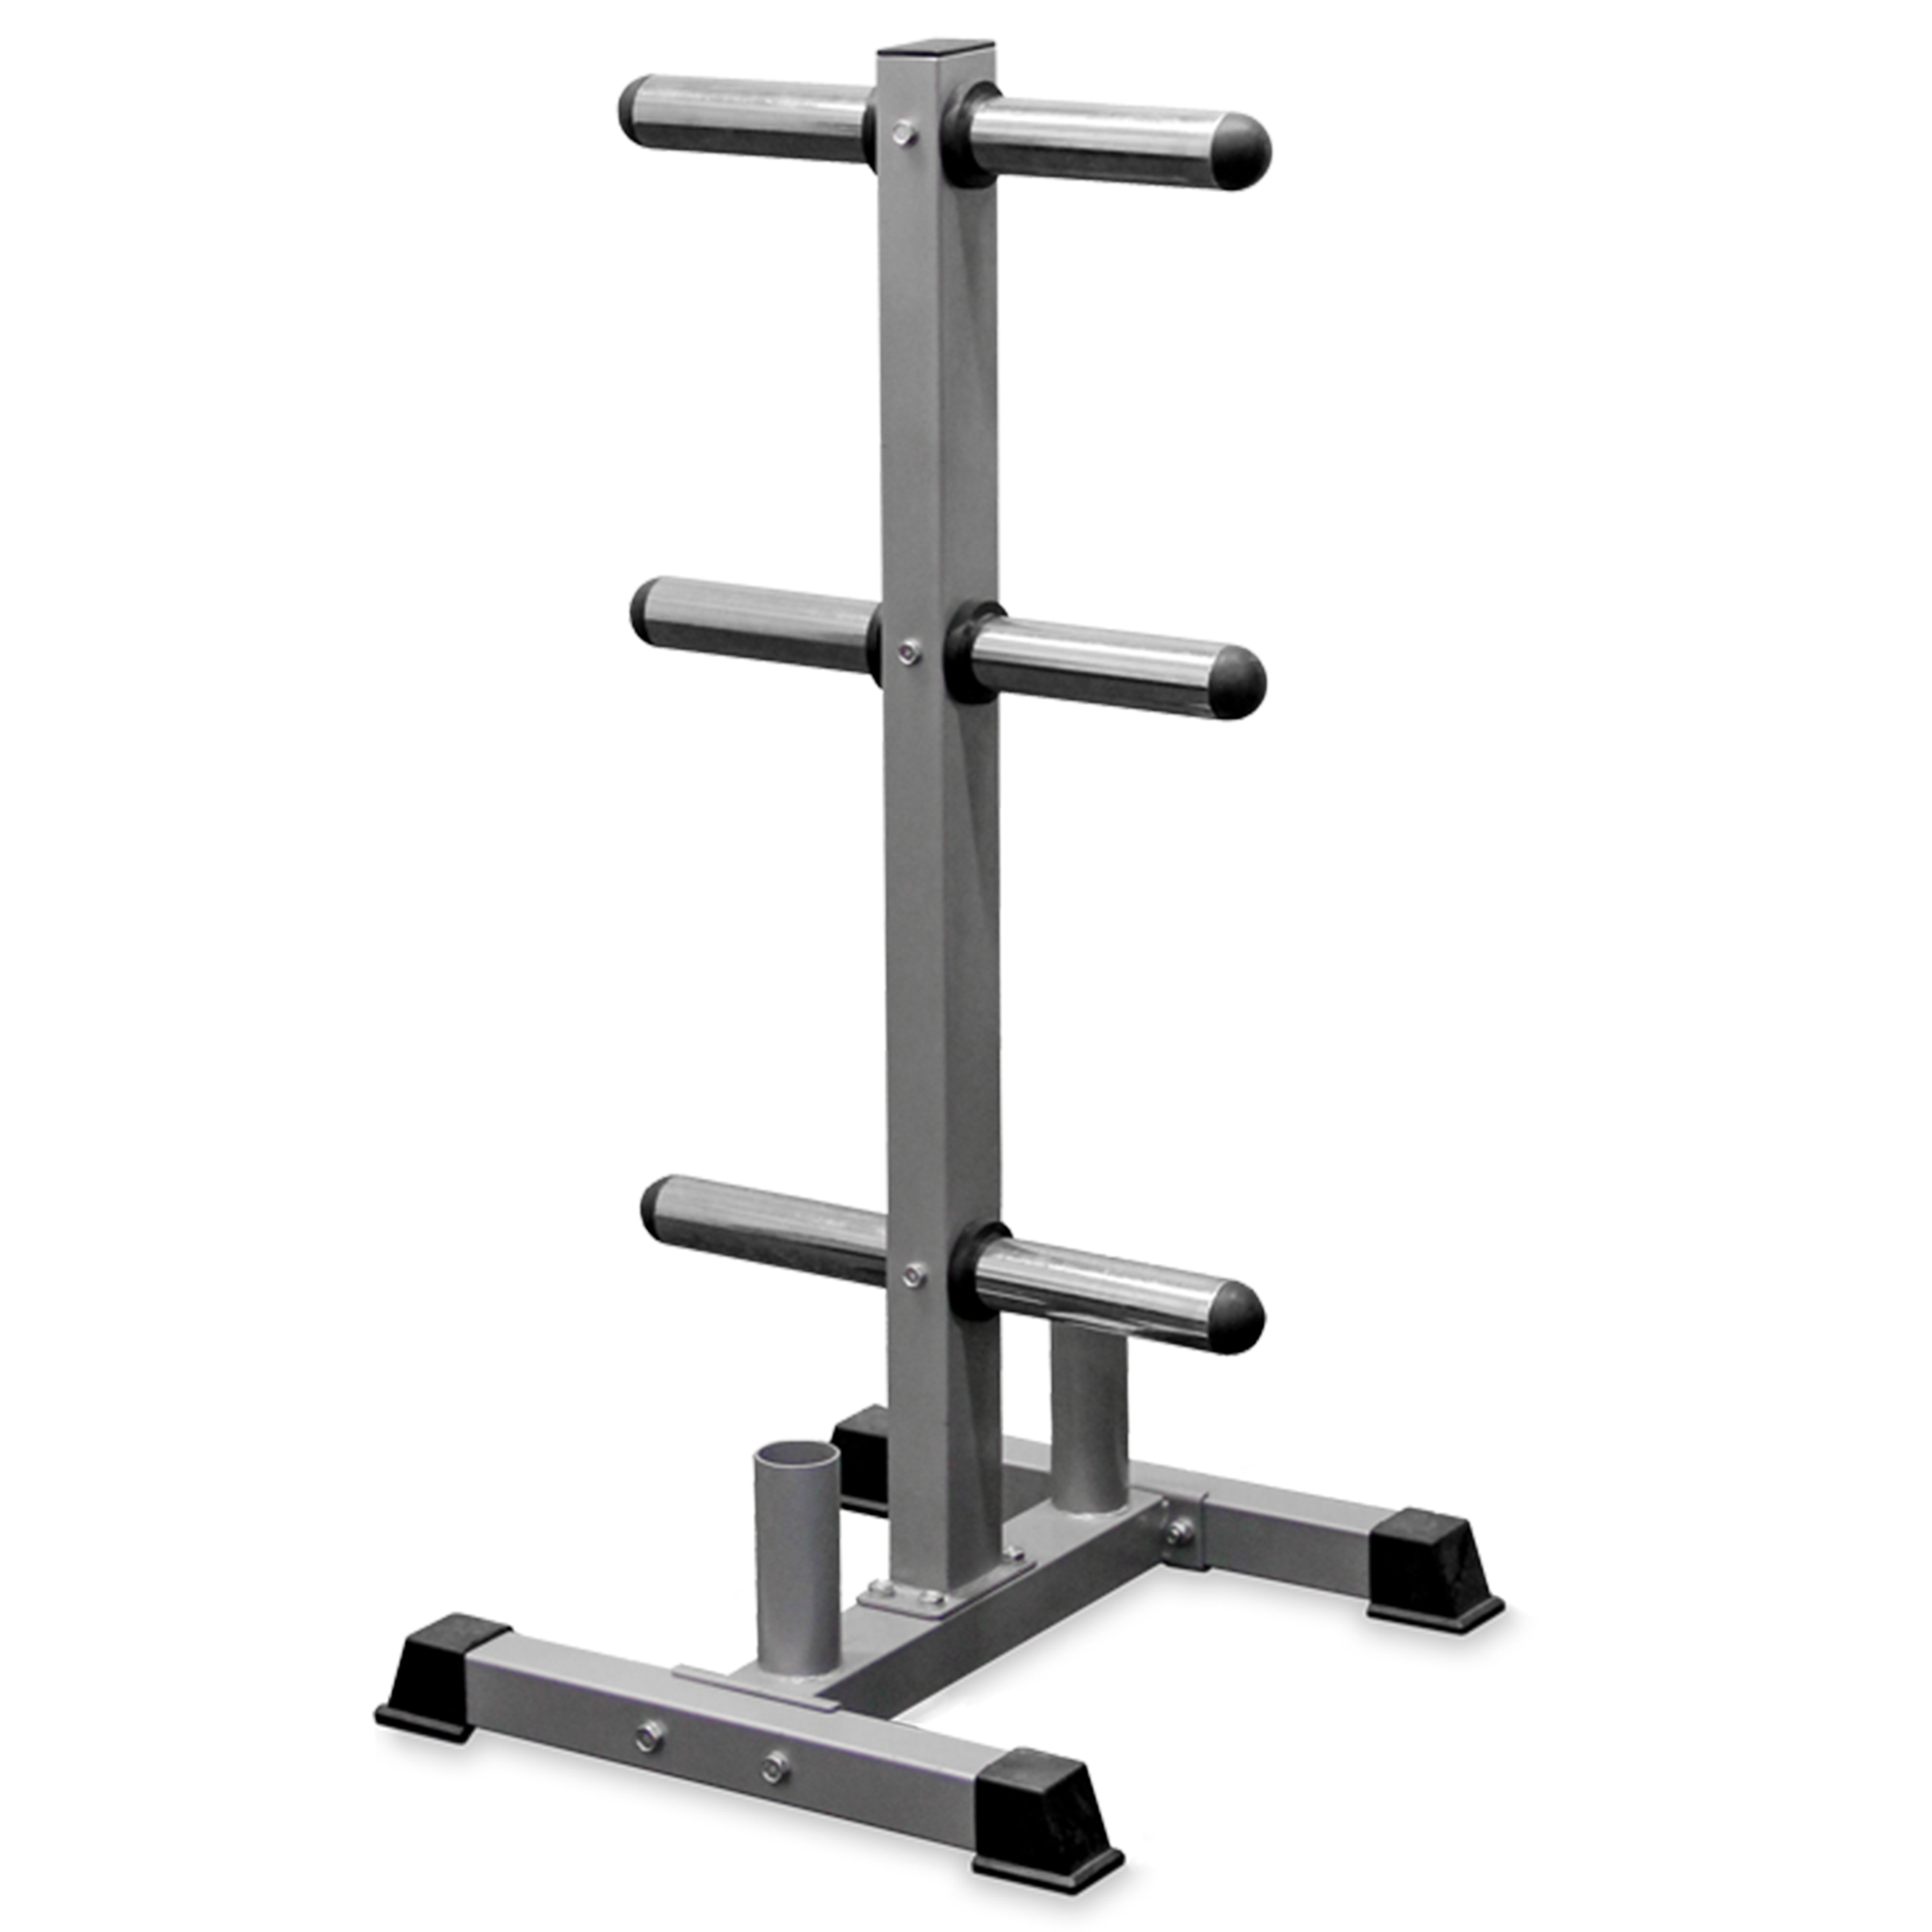 Valor Fitness BH-9 Olympic Bar and Plate Rack by Valor Athletics Inc.